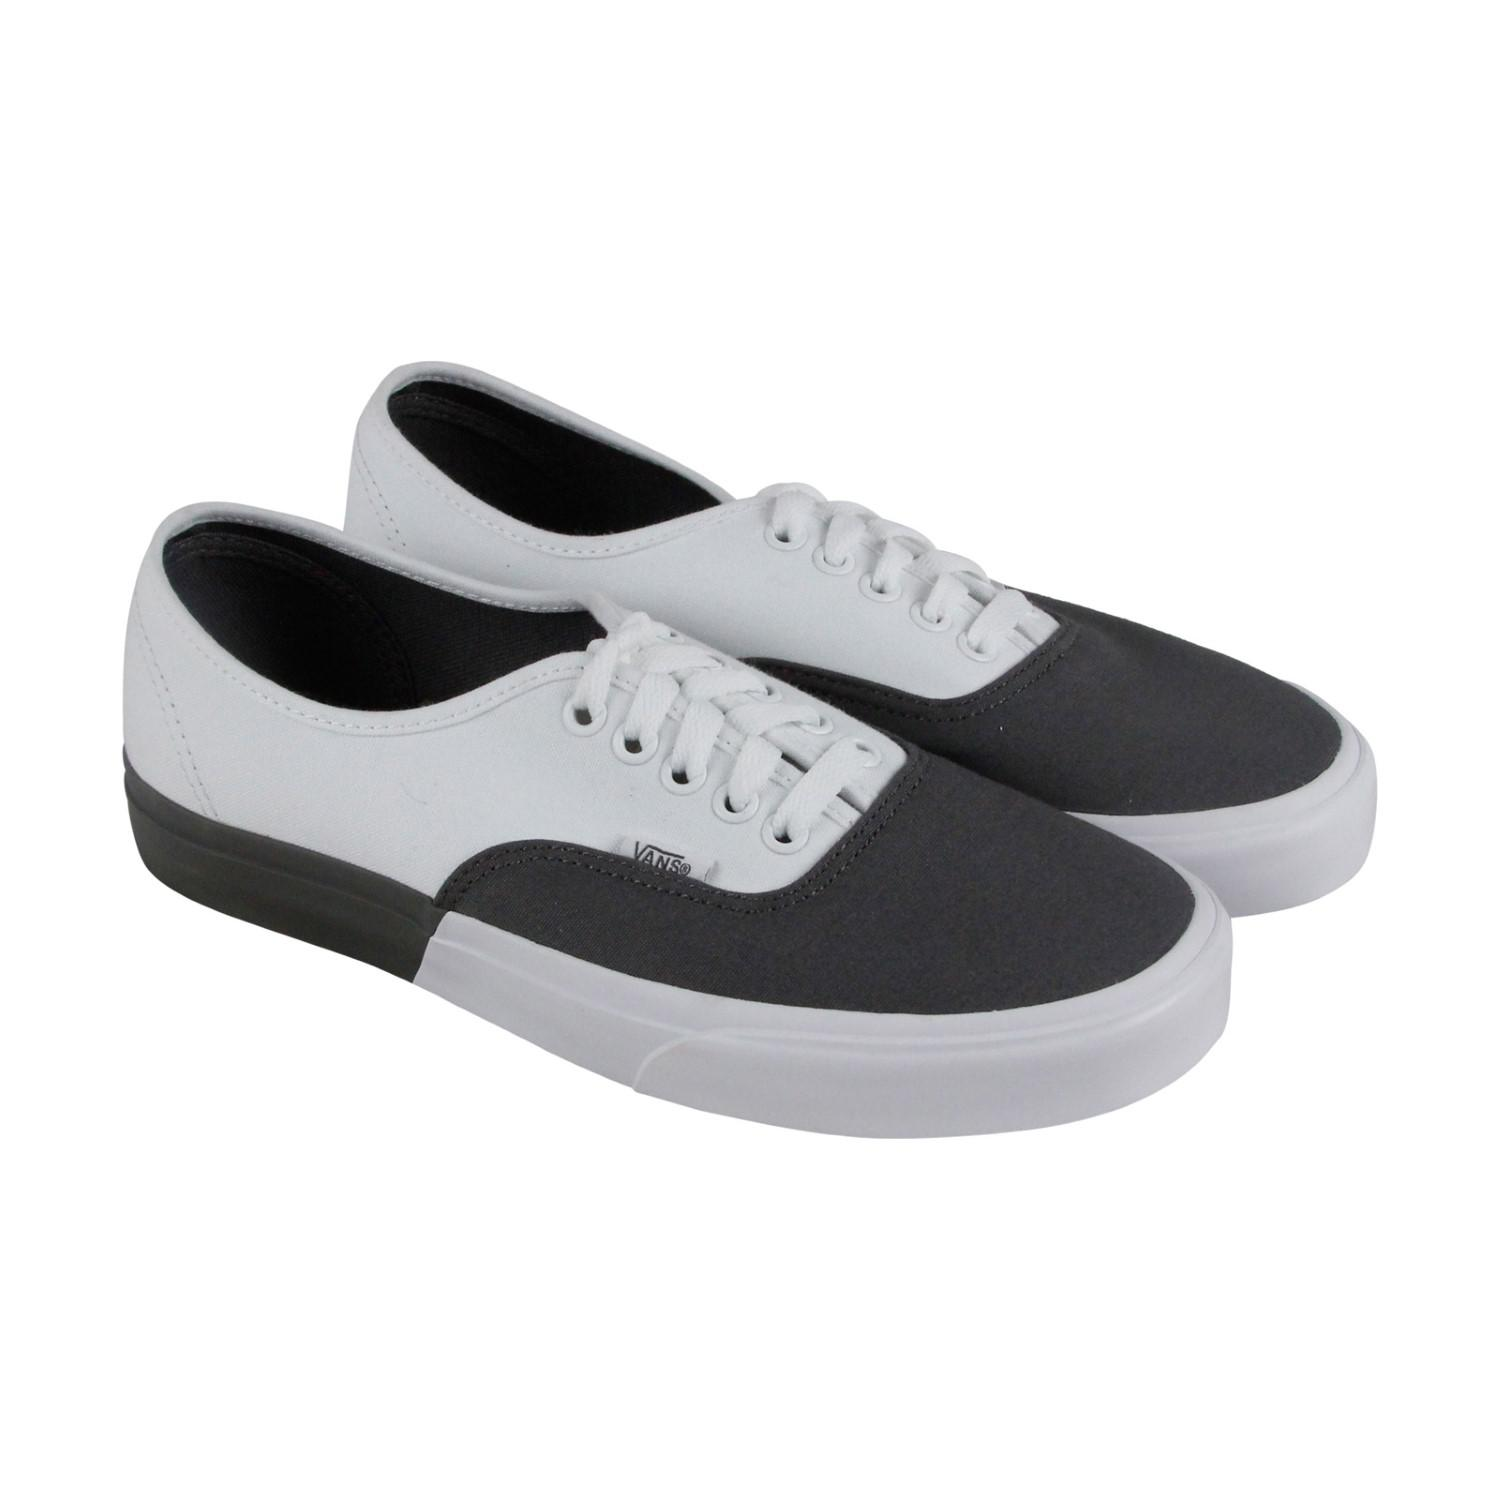 05ccdd832b Lyst - Vans Authentic Pewter True White Lace Up Sneakers in Gray for Men